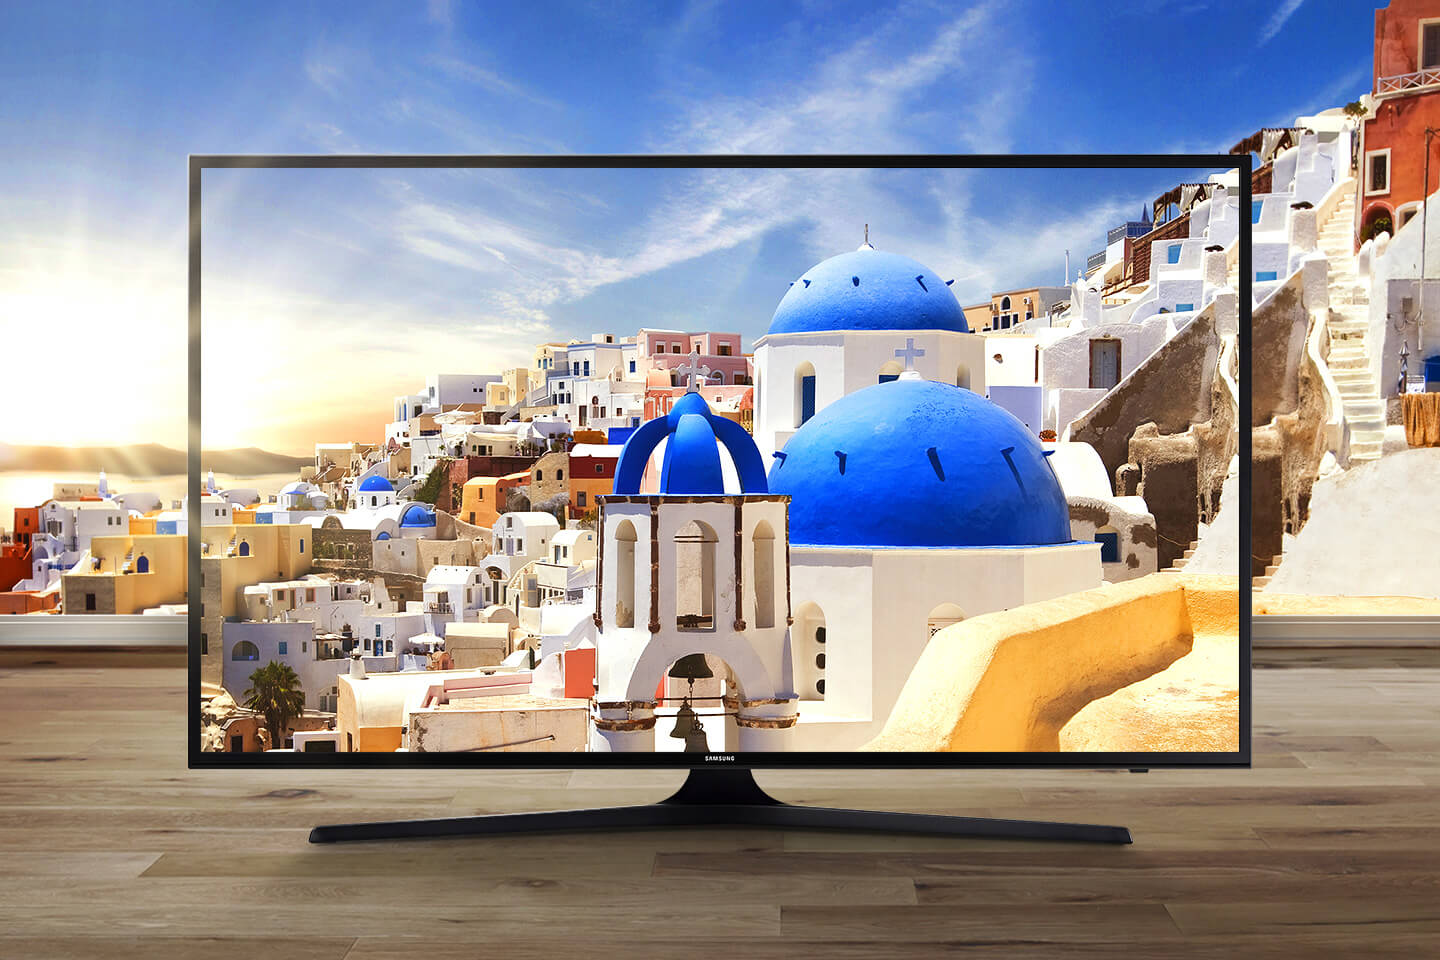 Samsungs 4K UHD LED TV has exceptional image quality